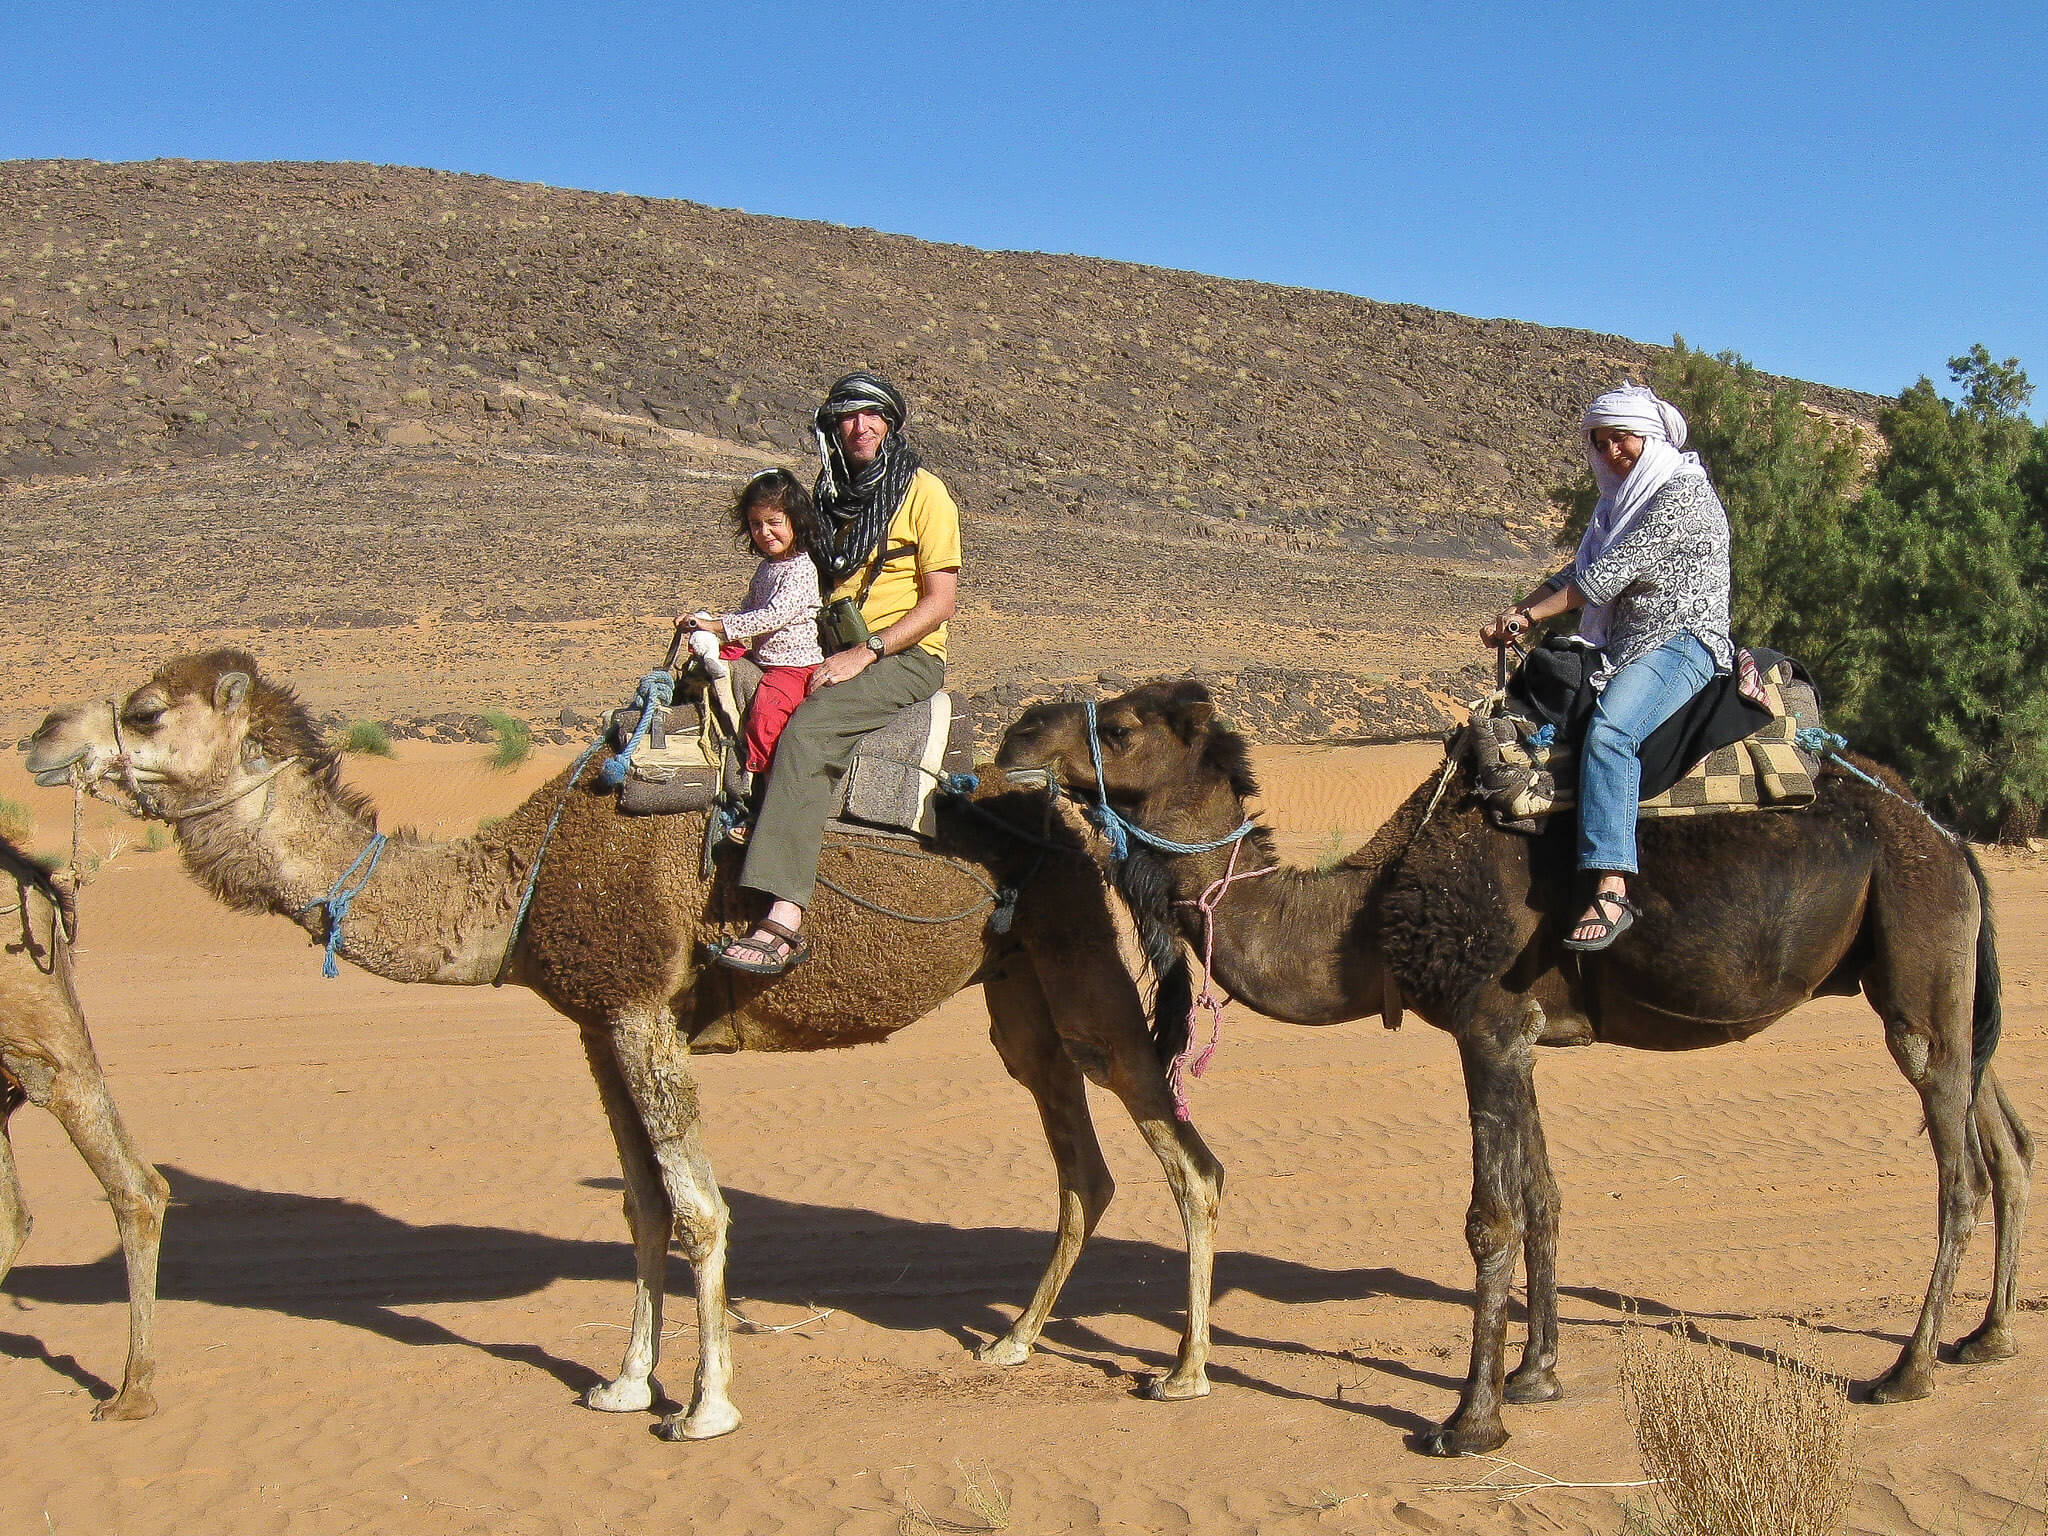 Sahara Desert Tour - Kids Activities in and around Morocco - Terres D'Amamar Eco Adventure Park